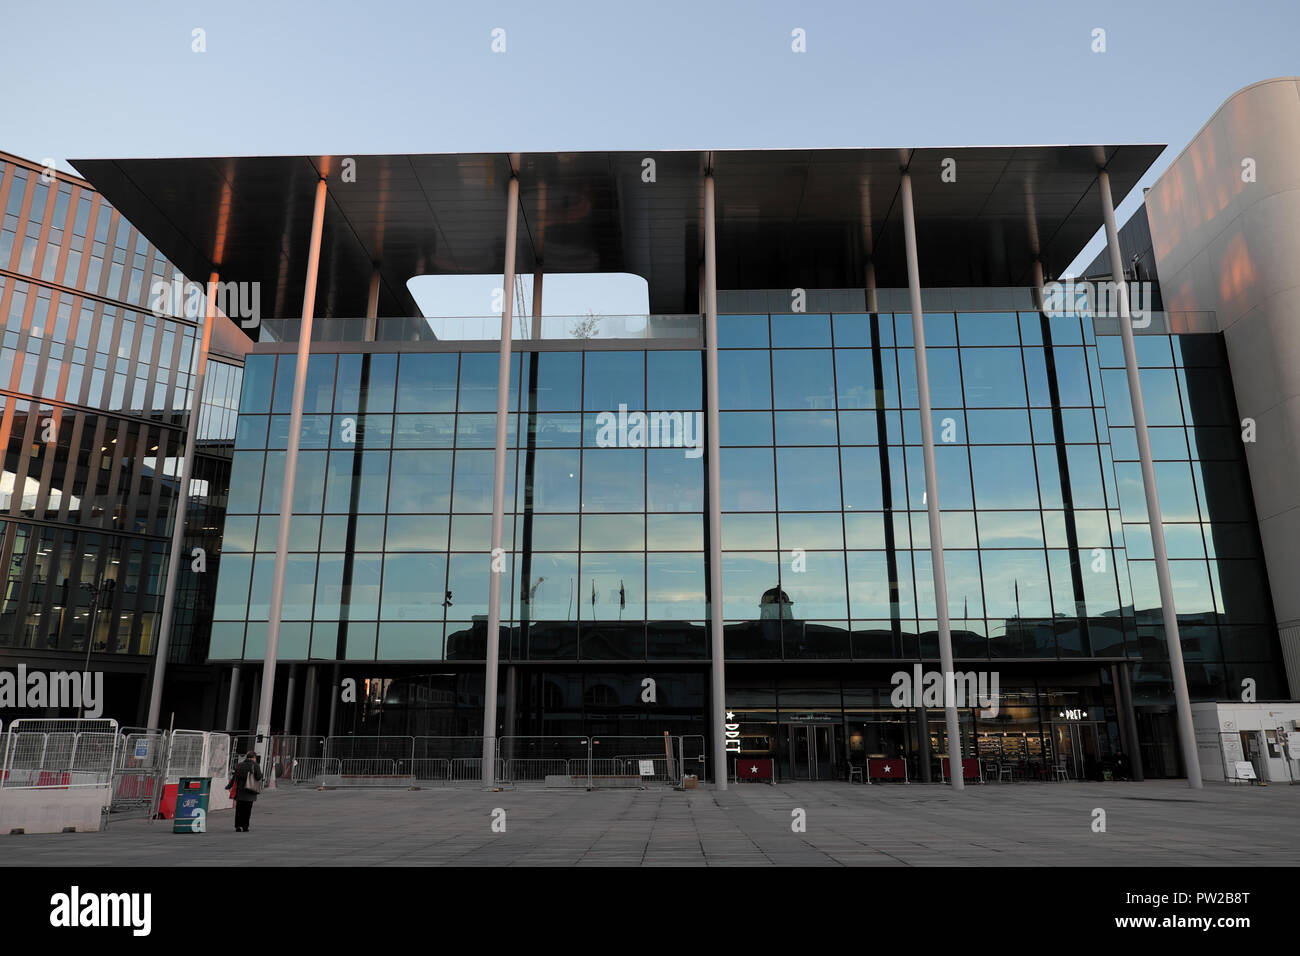 New BBC Cardiff Foster & Partners building opposite Cardiff Railway Station in Central Square Cardiff, Wales UK  KATHY DEWITT - Stock Image